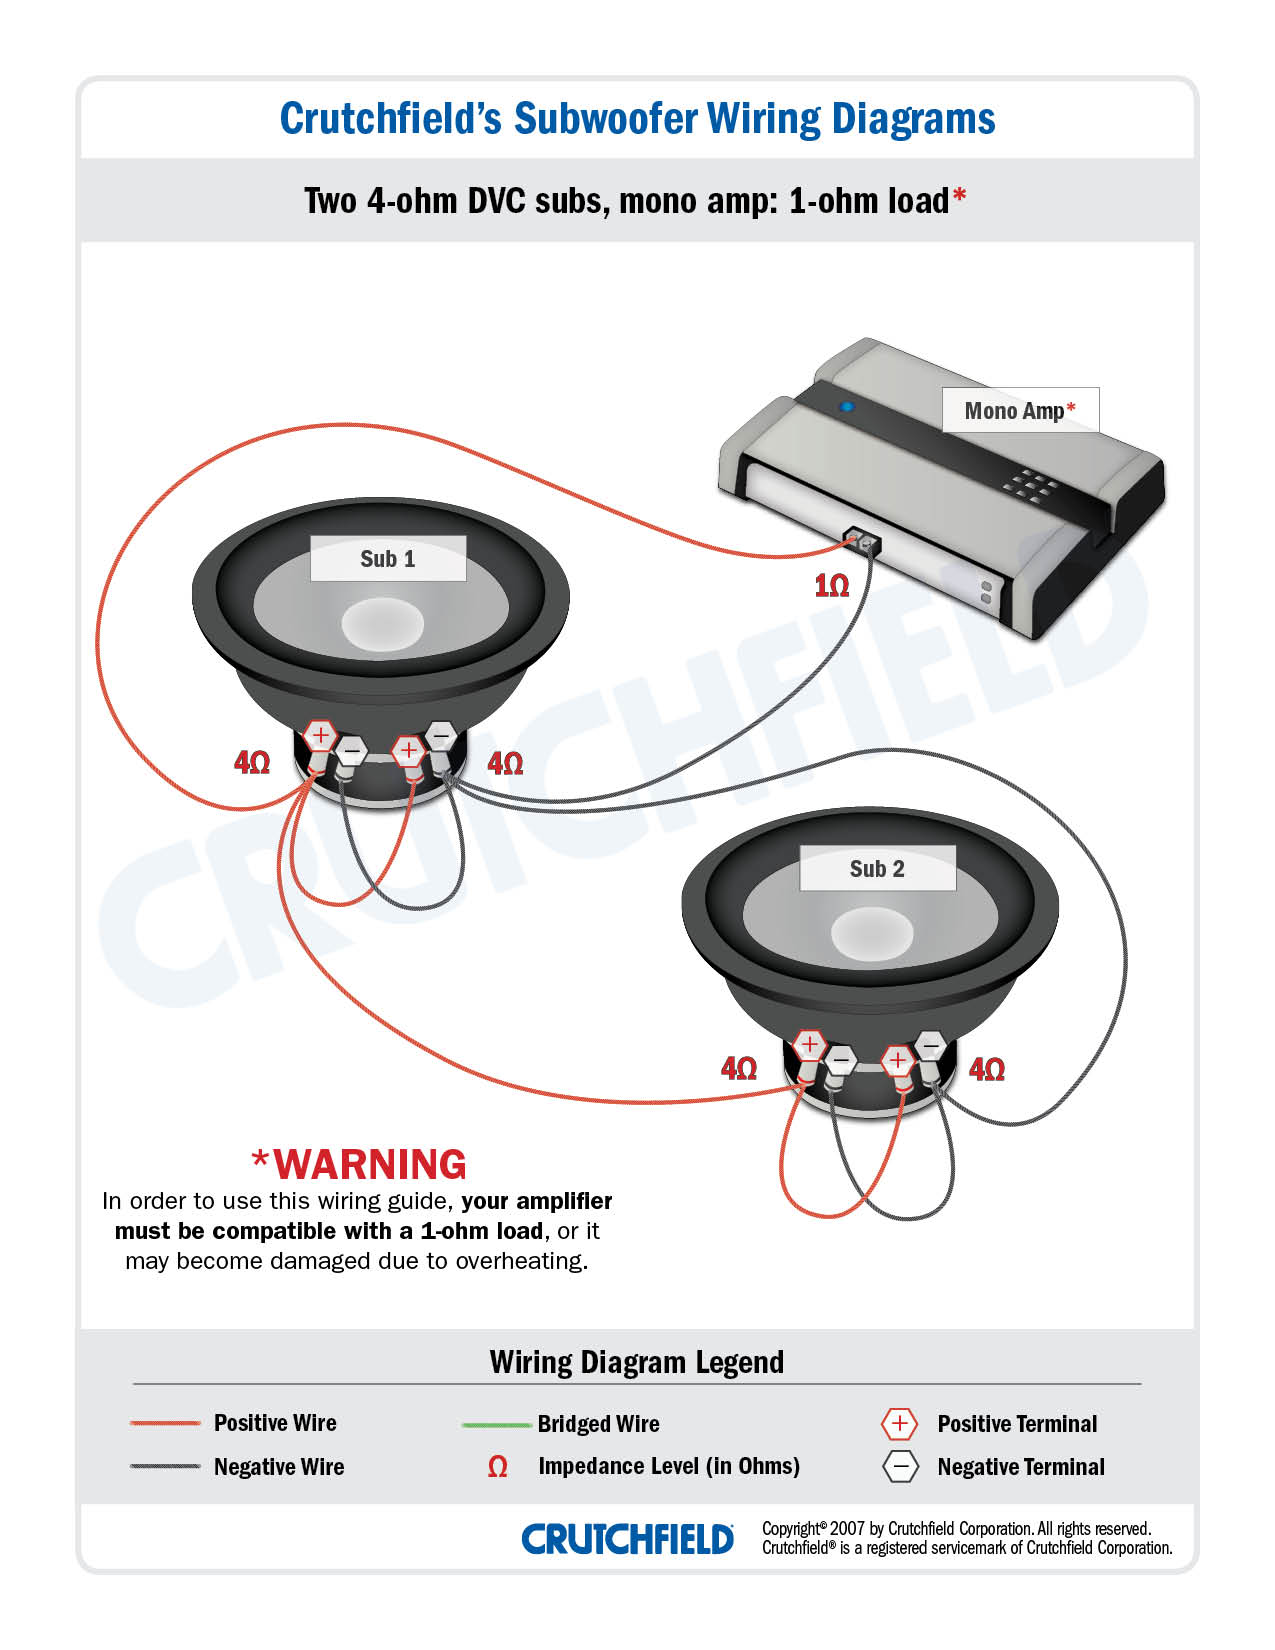 Jl audio jx500 1d mono subwoofer amplifier 500 watts rms x 1 at on wiring diagram for car amplifier and subwoofer Car Subwoofers and Amps Diagrams Amp Wiring